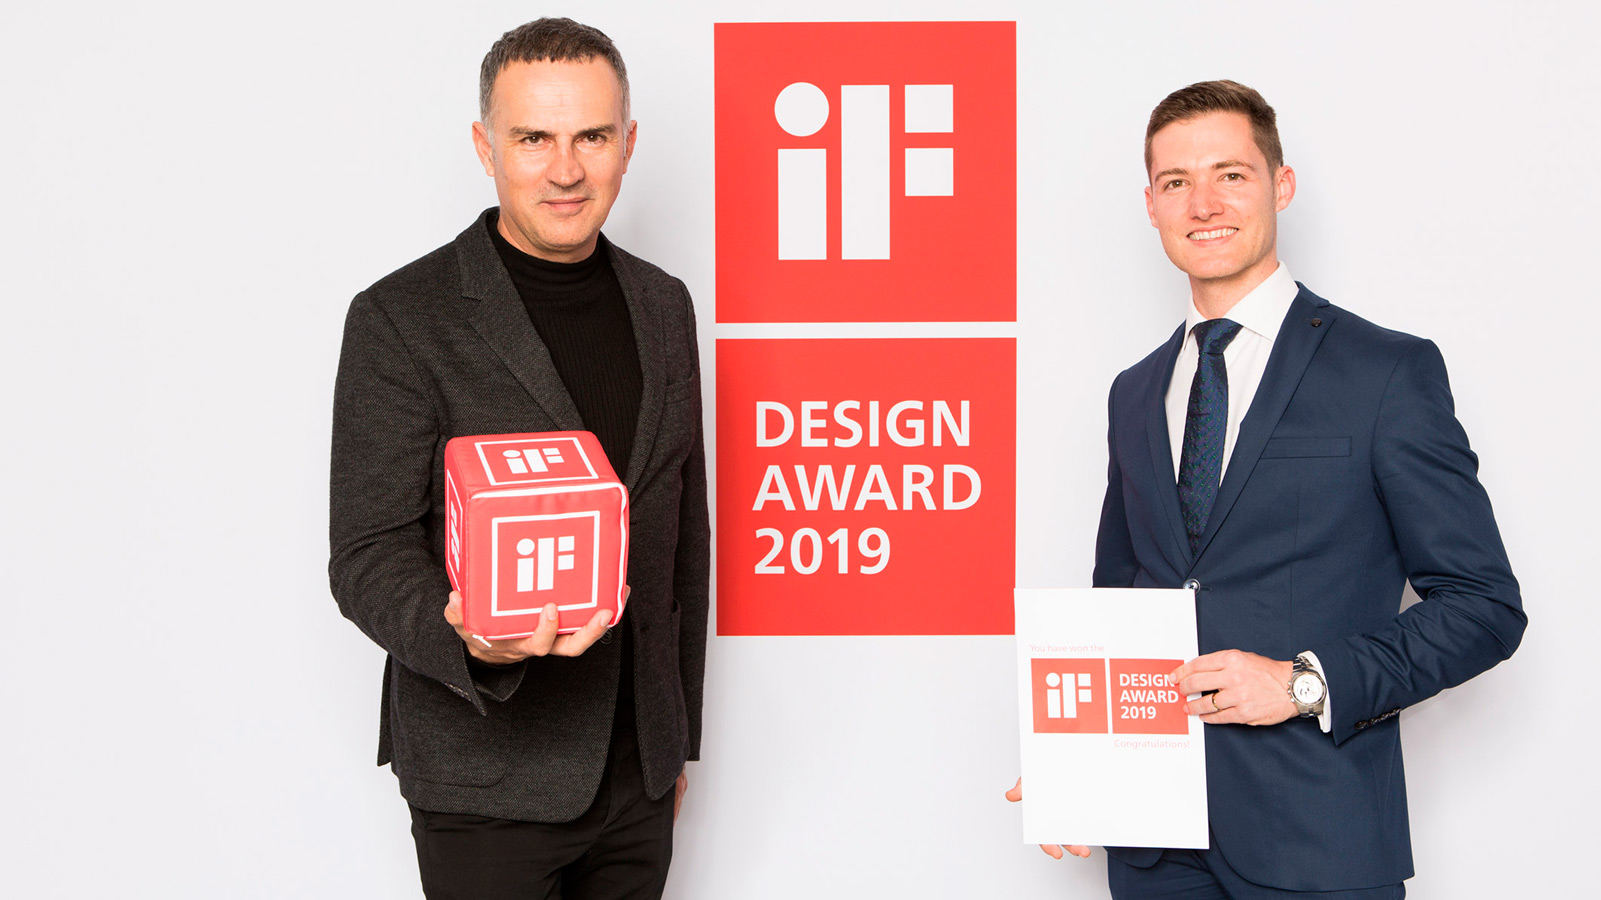 The Lignage collection by Ramón Esteve and Noken has won the award for best bathroom design at the iF Design Award 2019